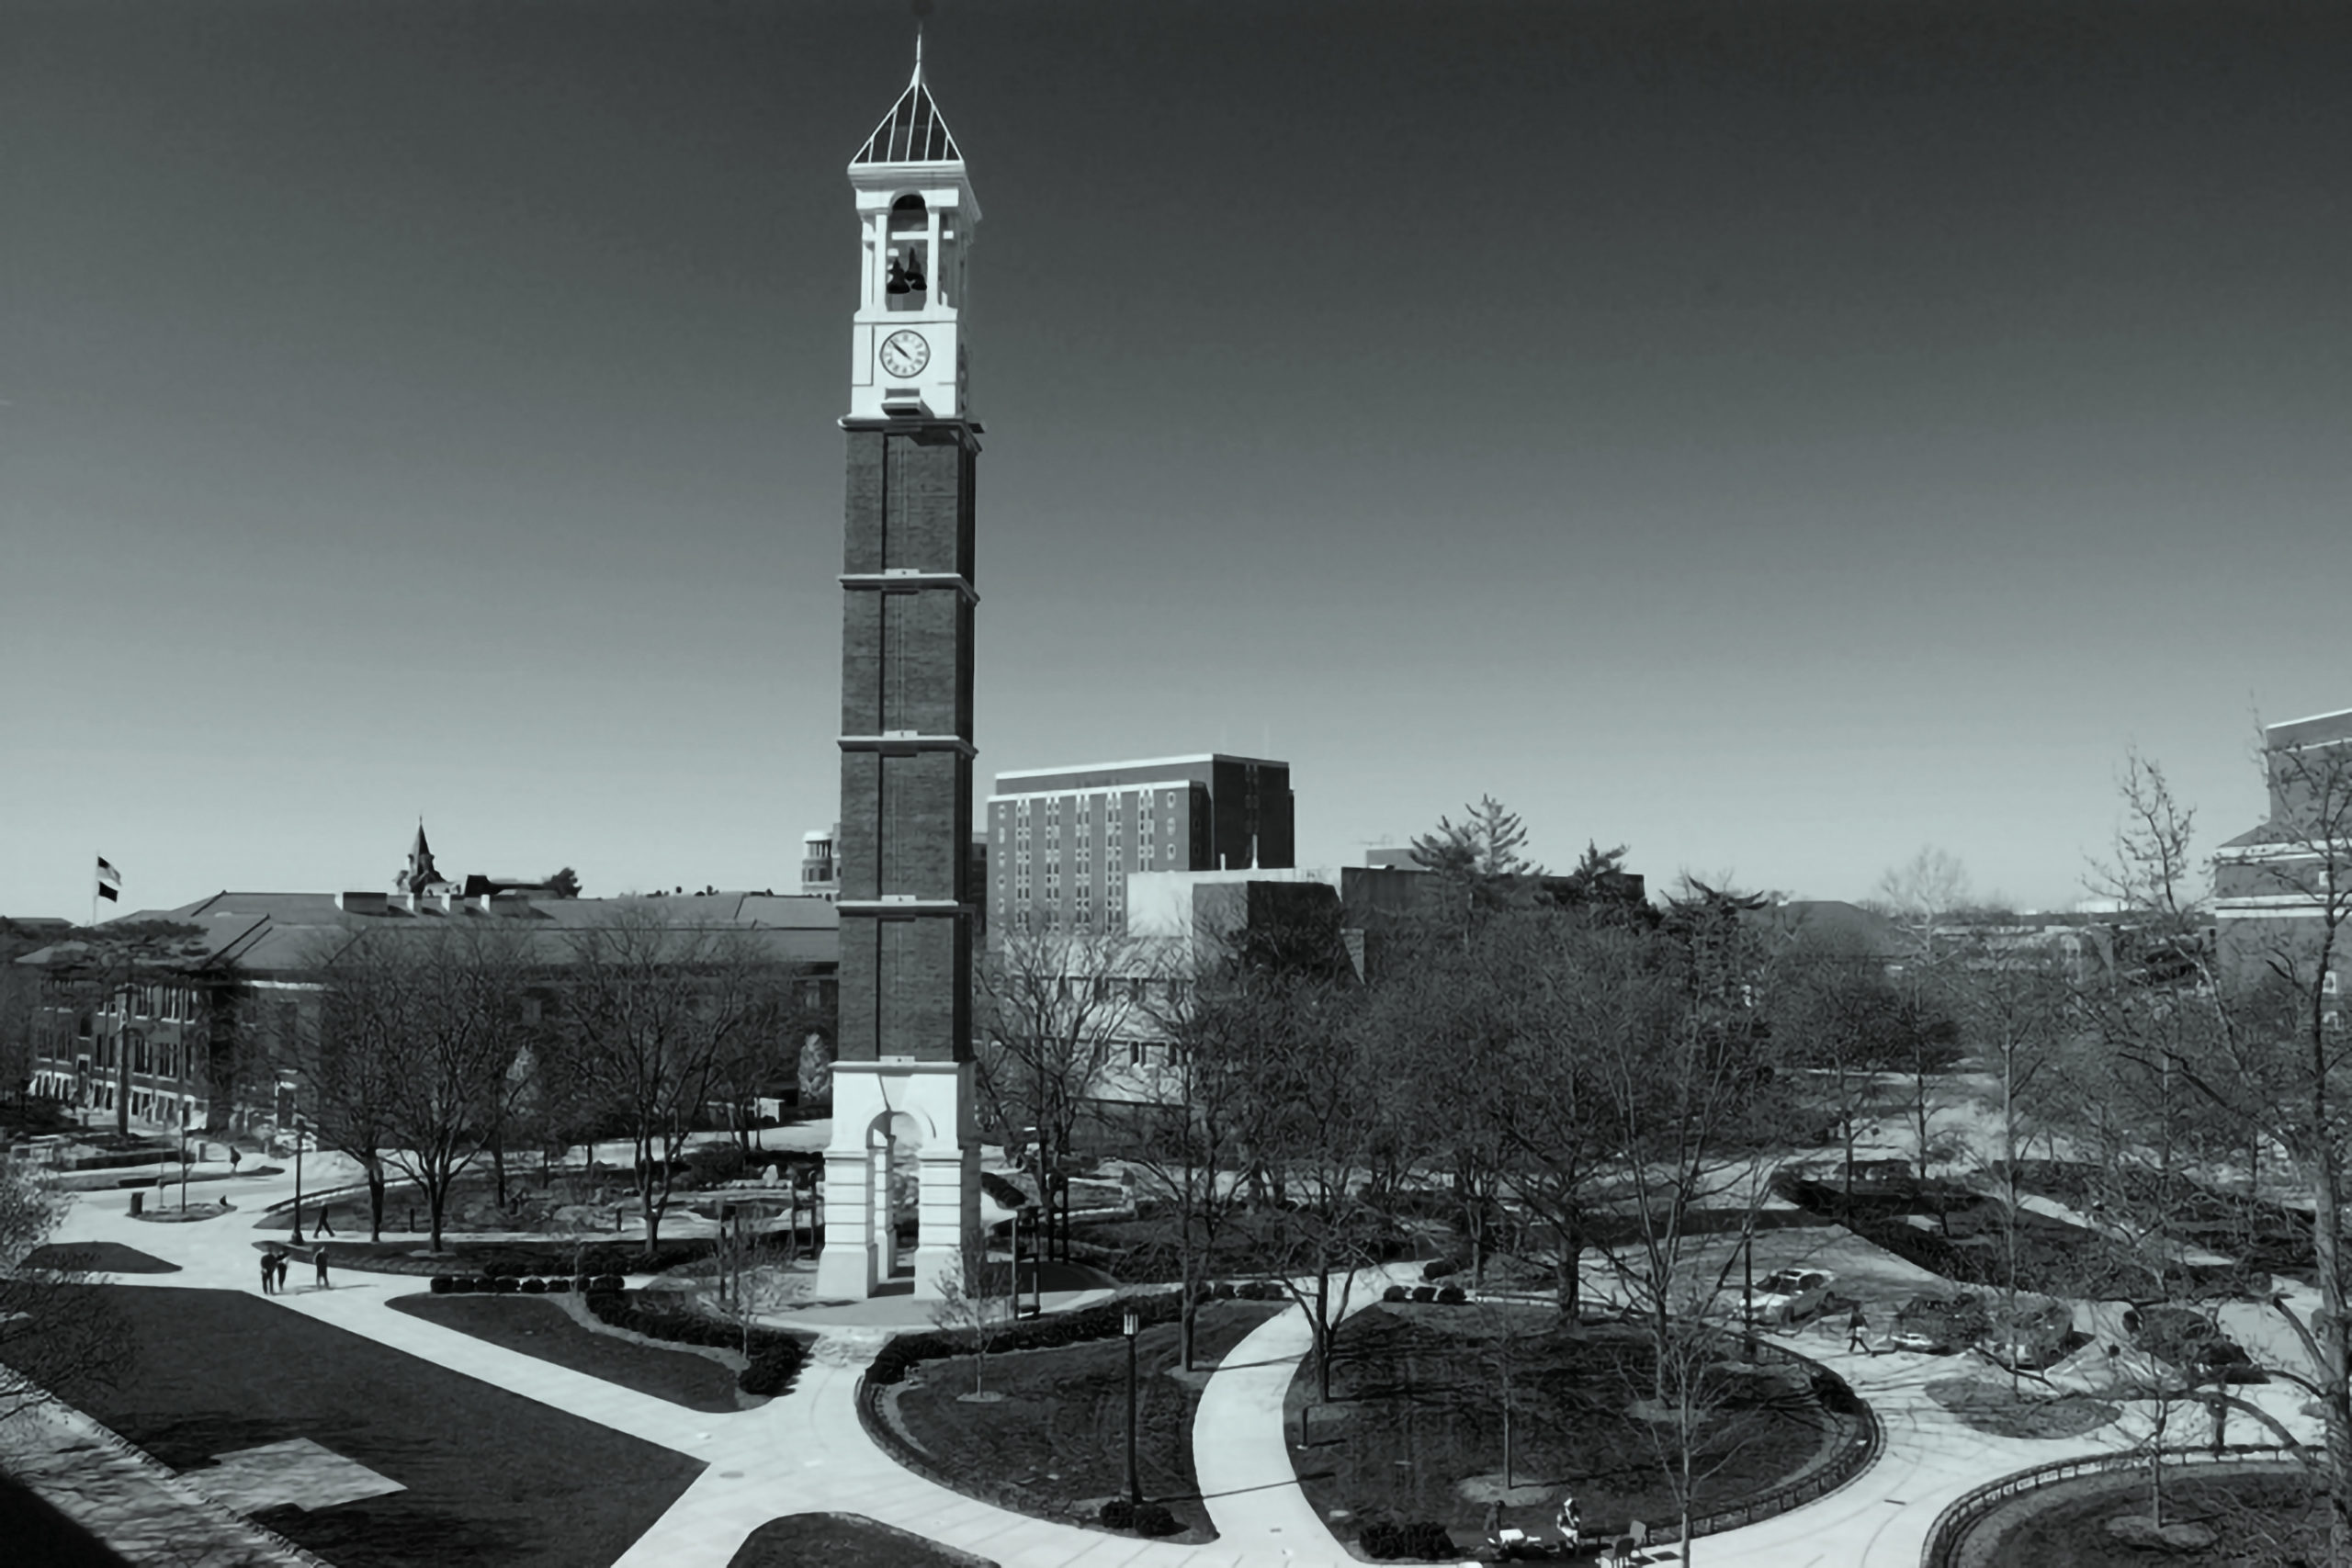 Purdue University - Centennial Mall